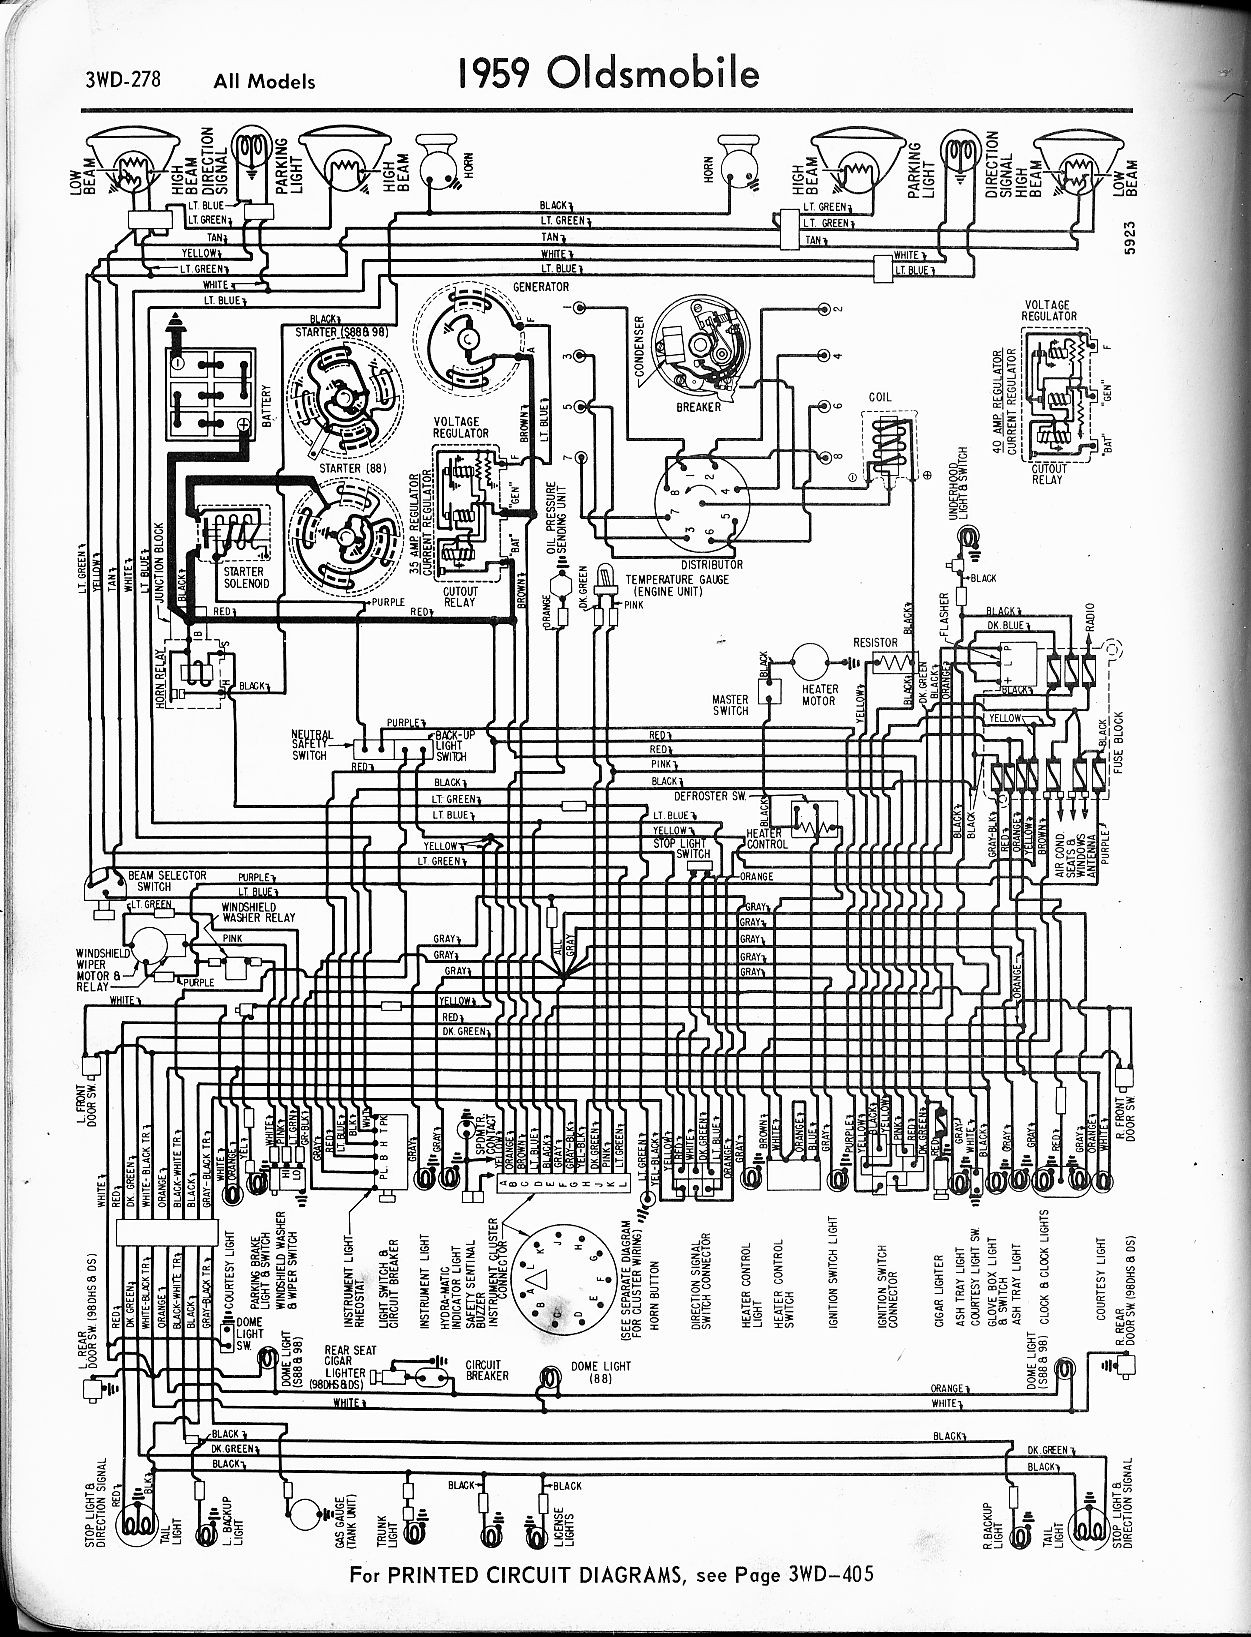 2001 Oldsmobile Aurora Window Wiring Diagram